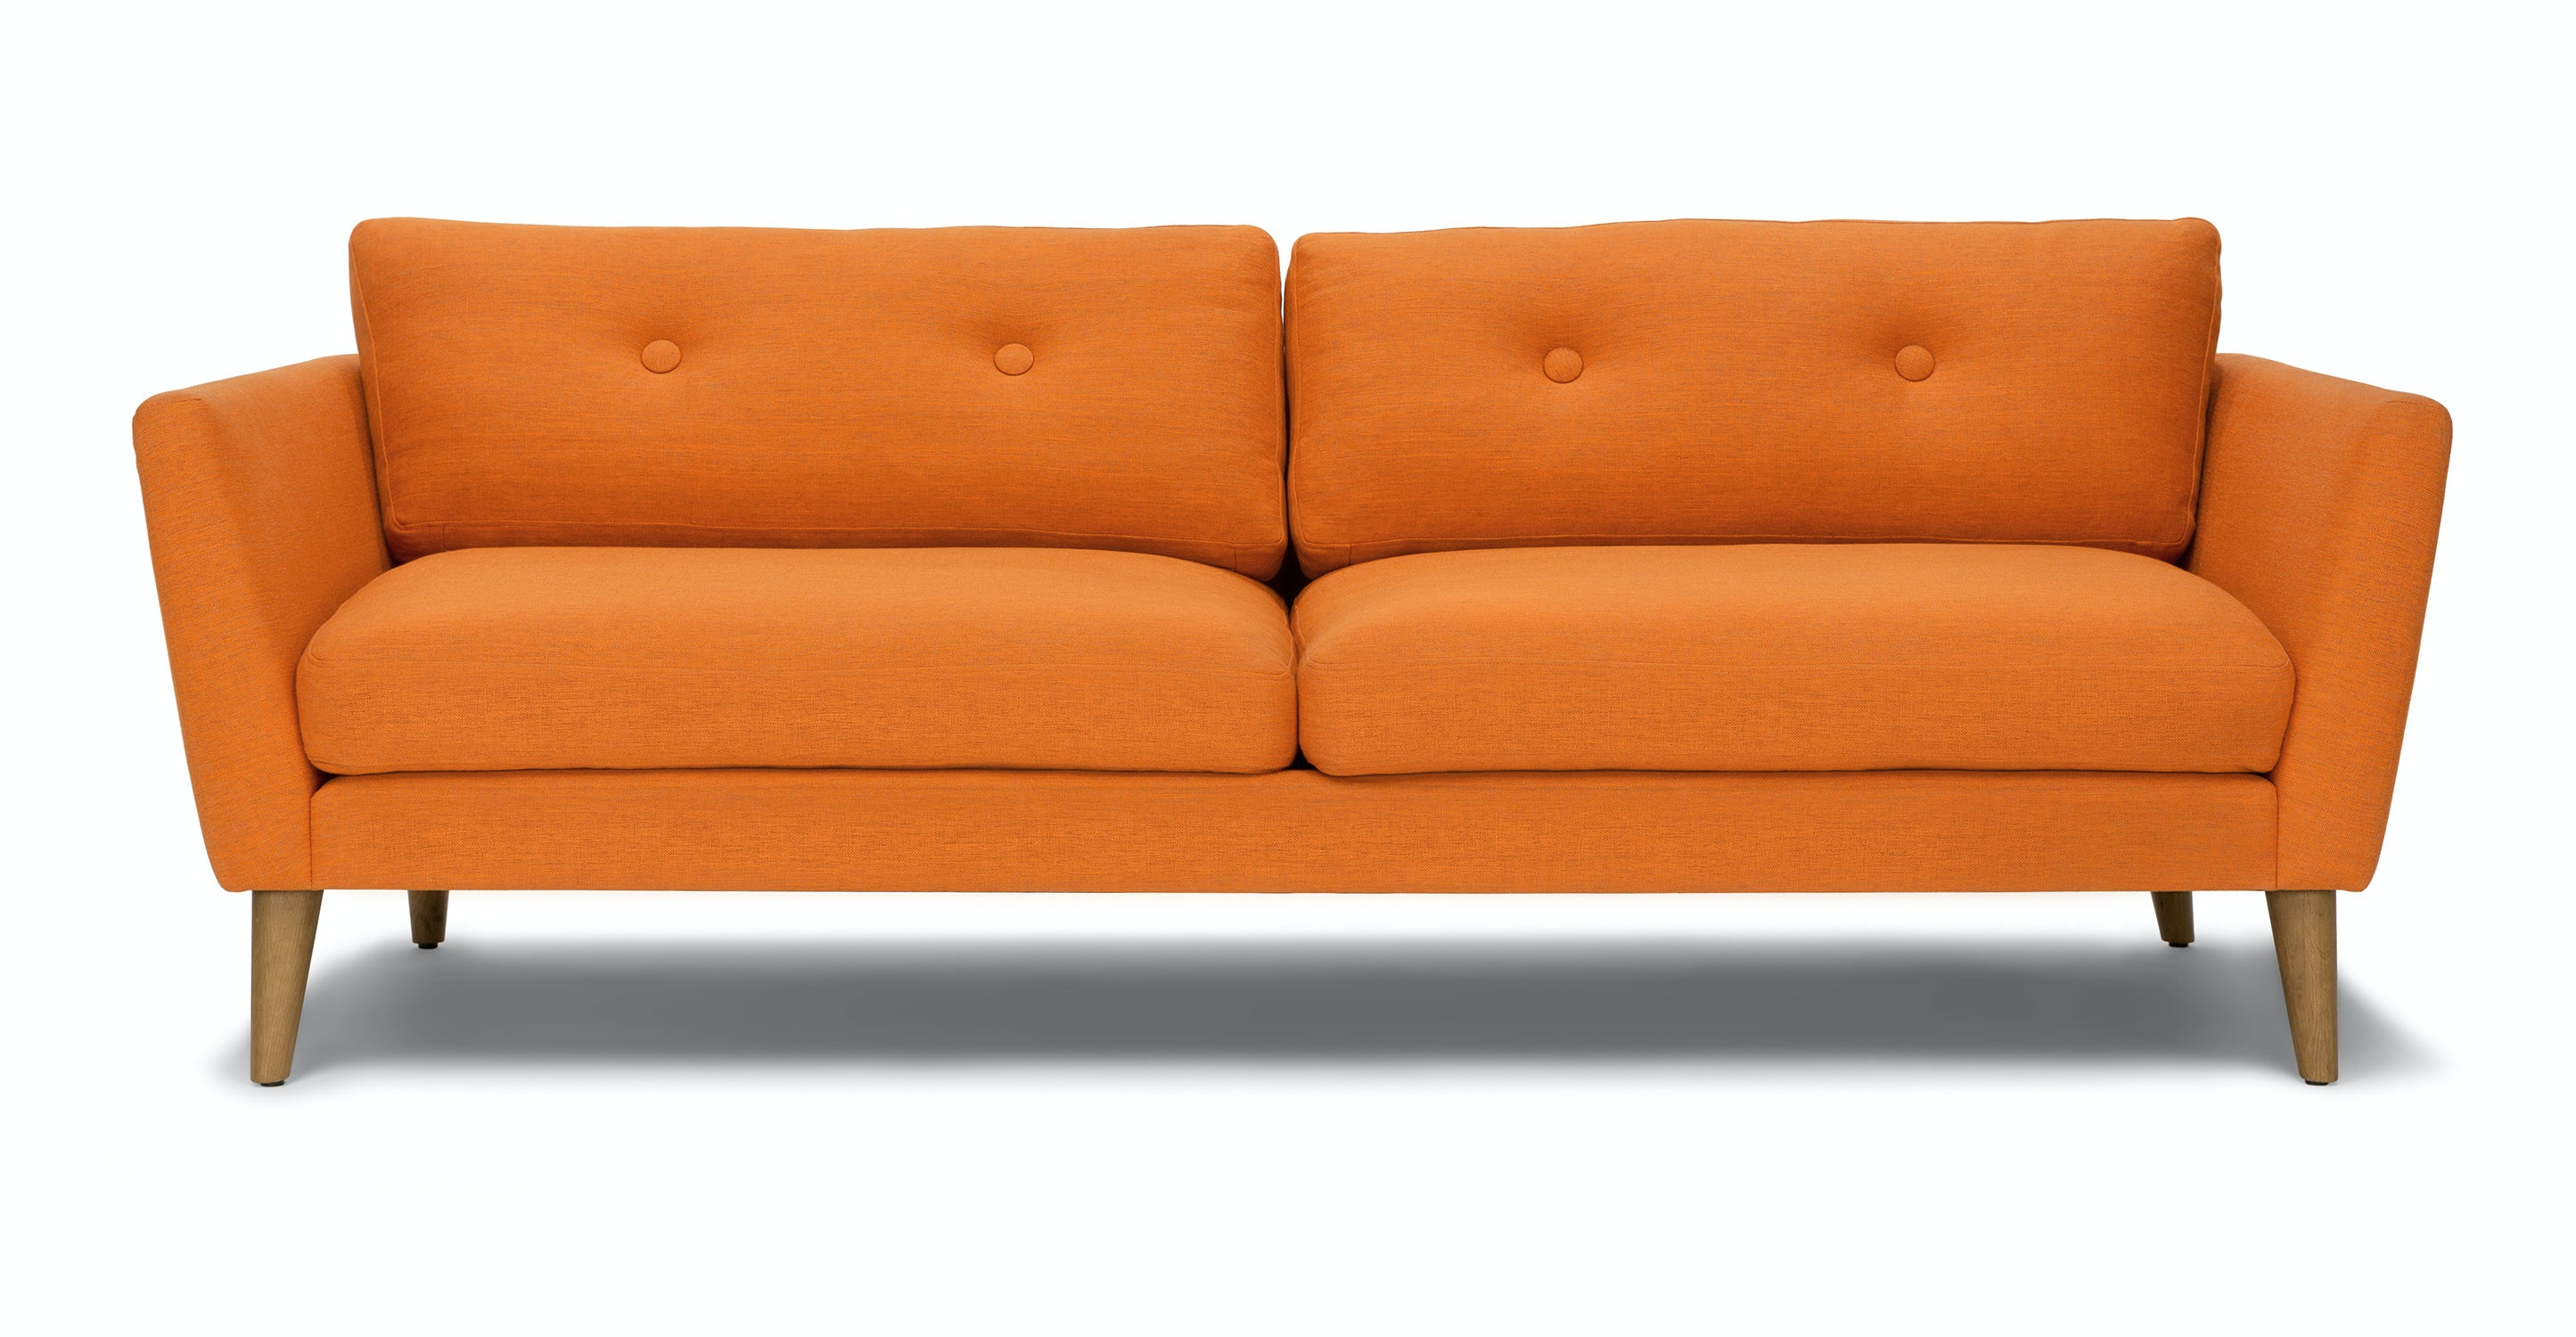 Emil Papaya Orange Sofa Sofas Article Modern Mid Century And Scandinavian Furniture